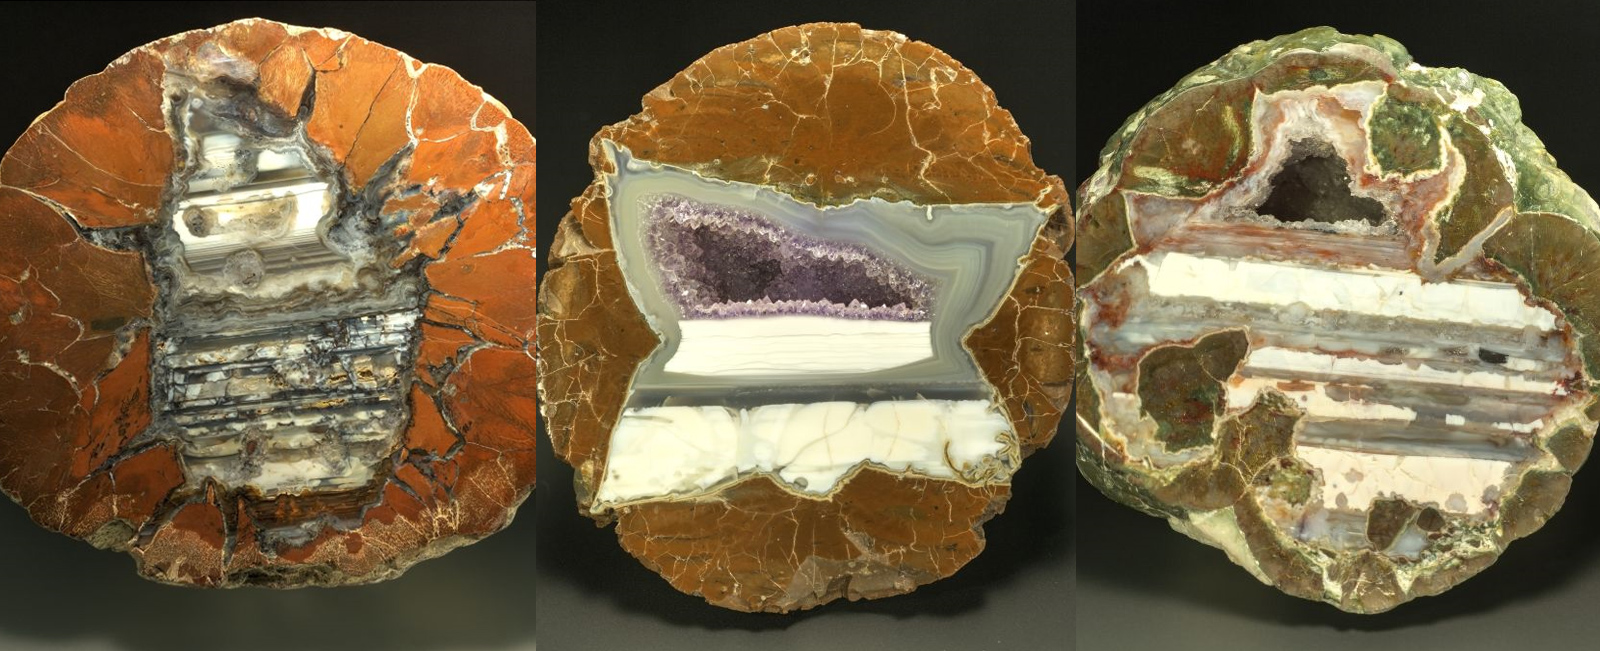 THE THUNDEREGG, JULIAN GRAY, RENTAL CAR LOBBY